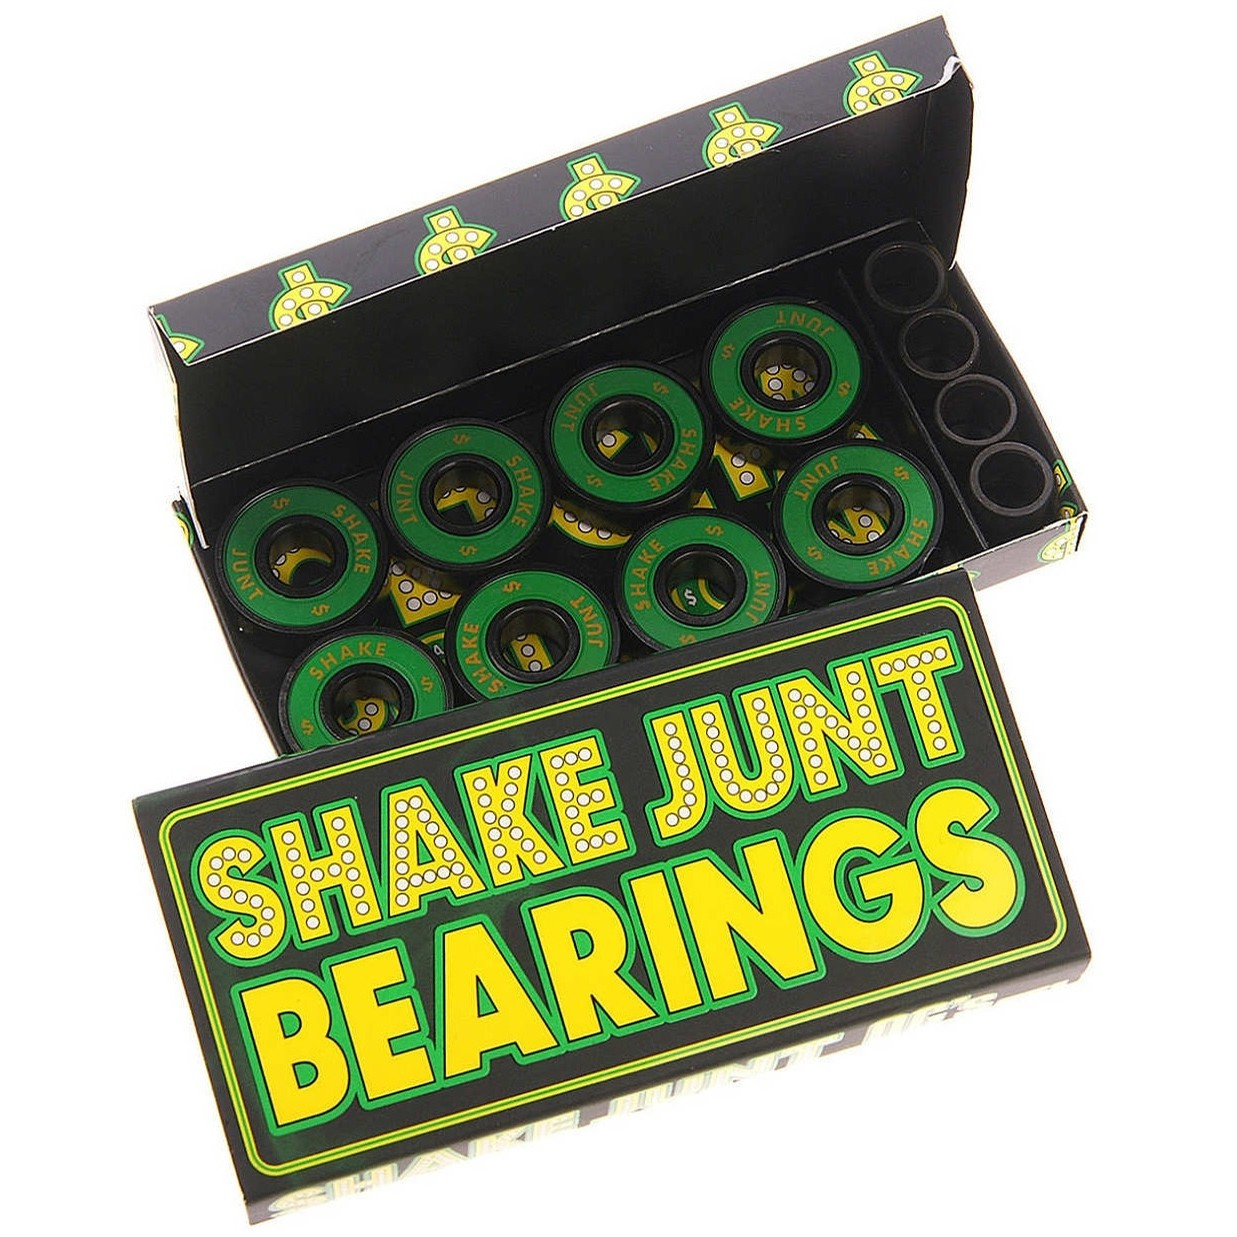 OGs Bearings (Abec 5)